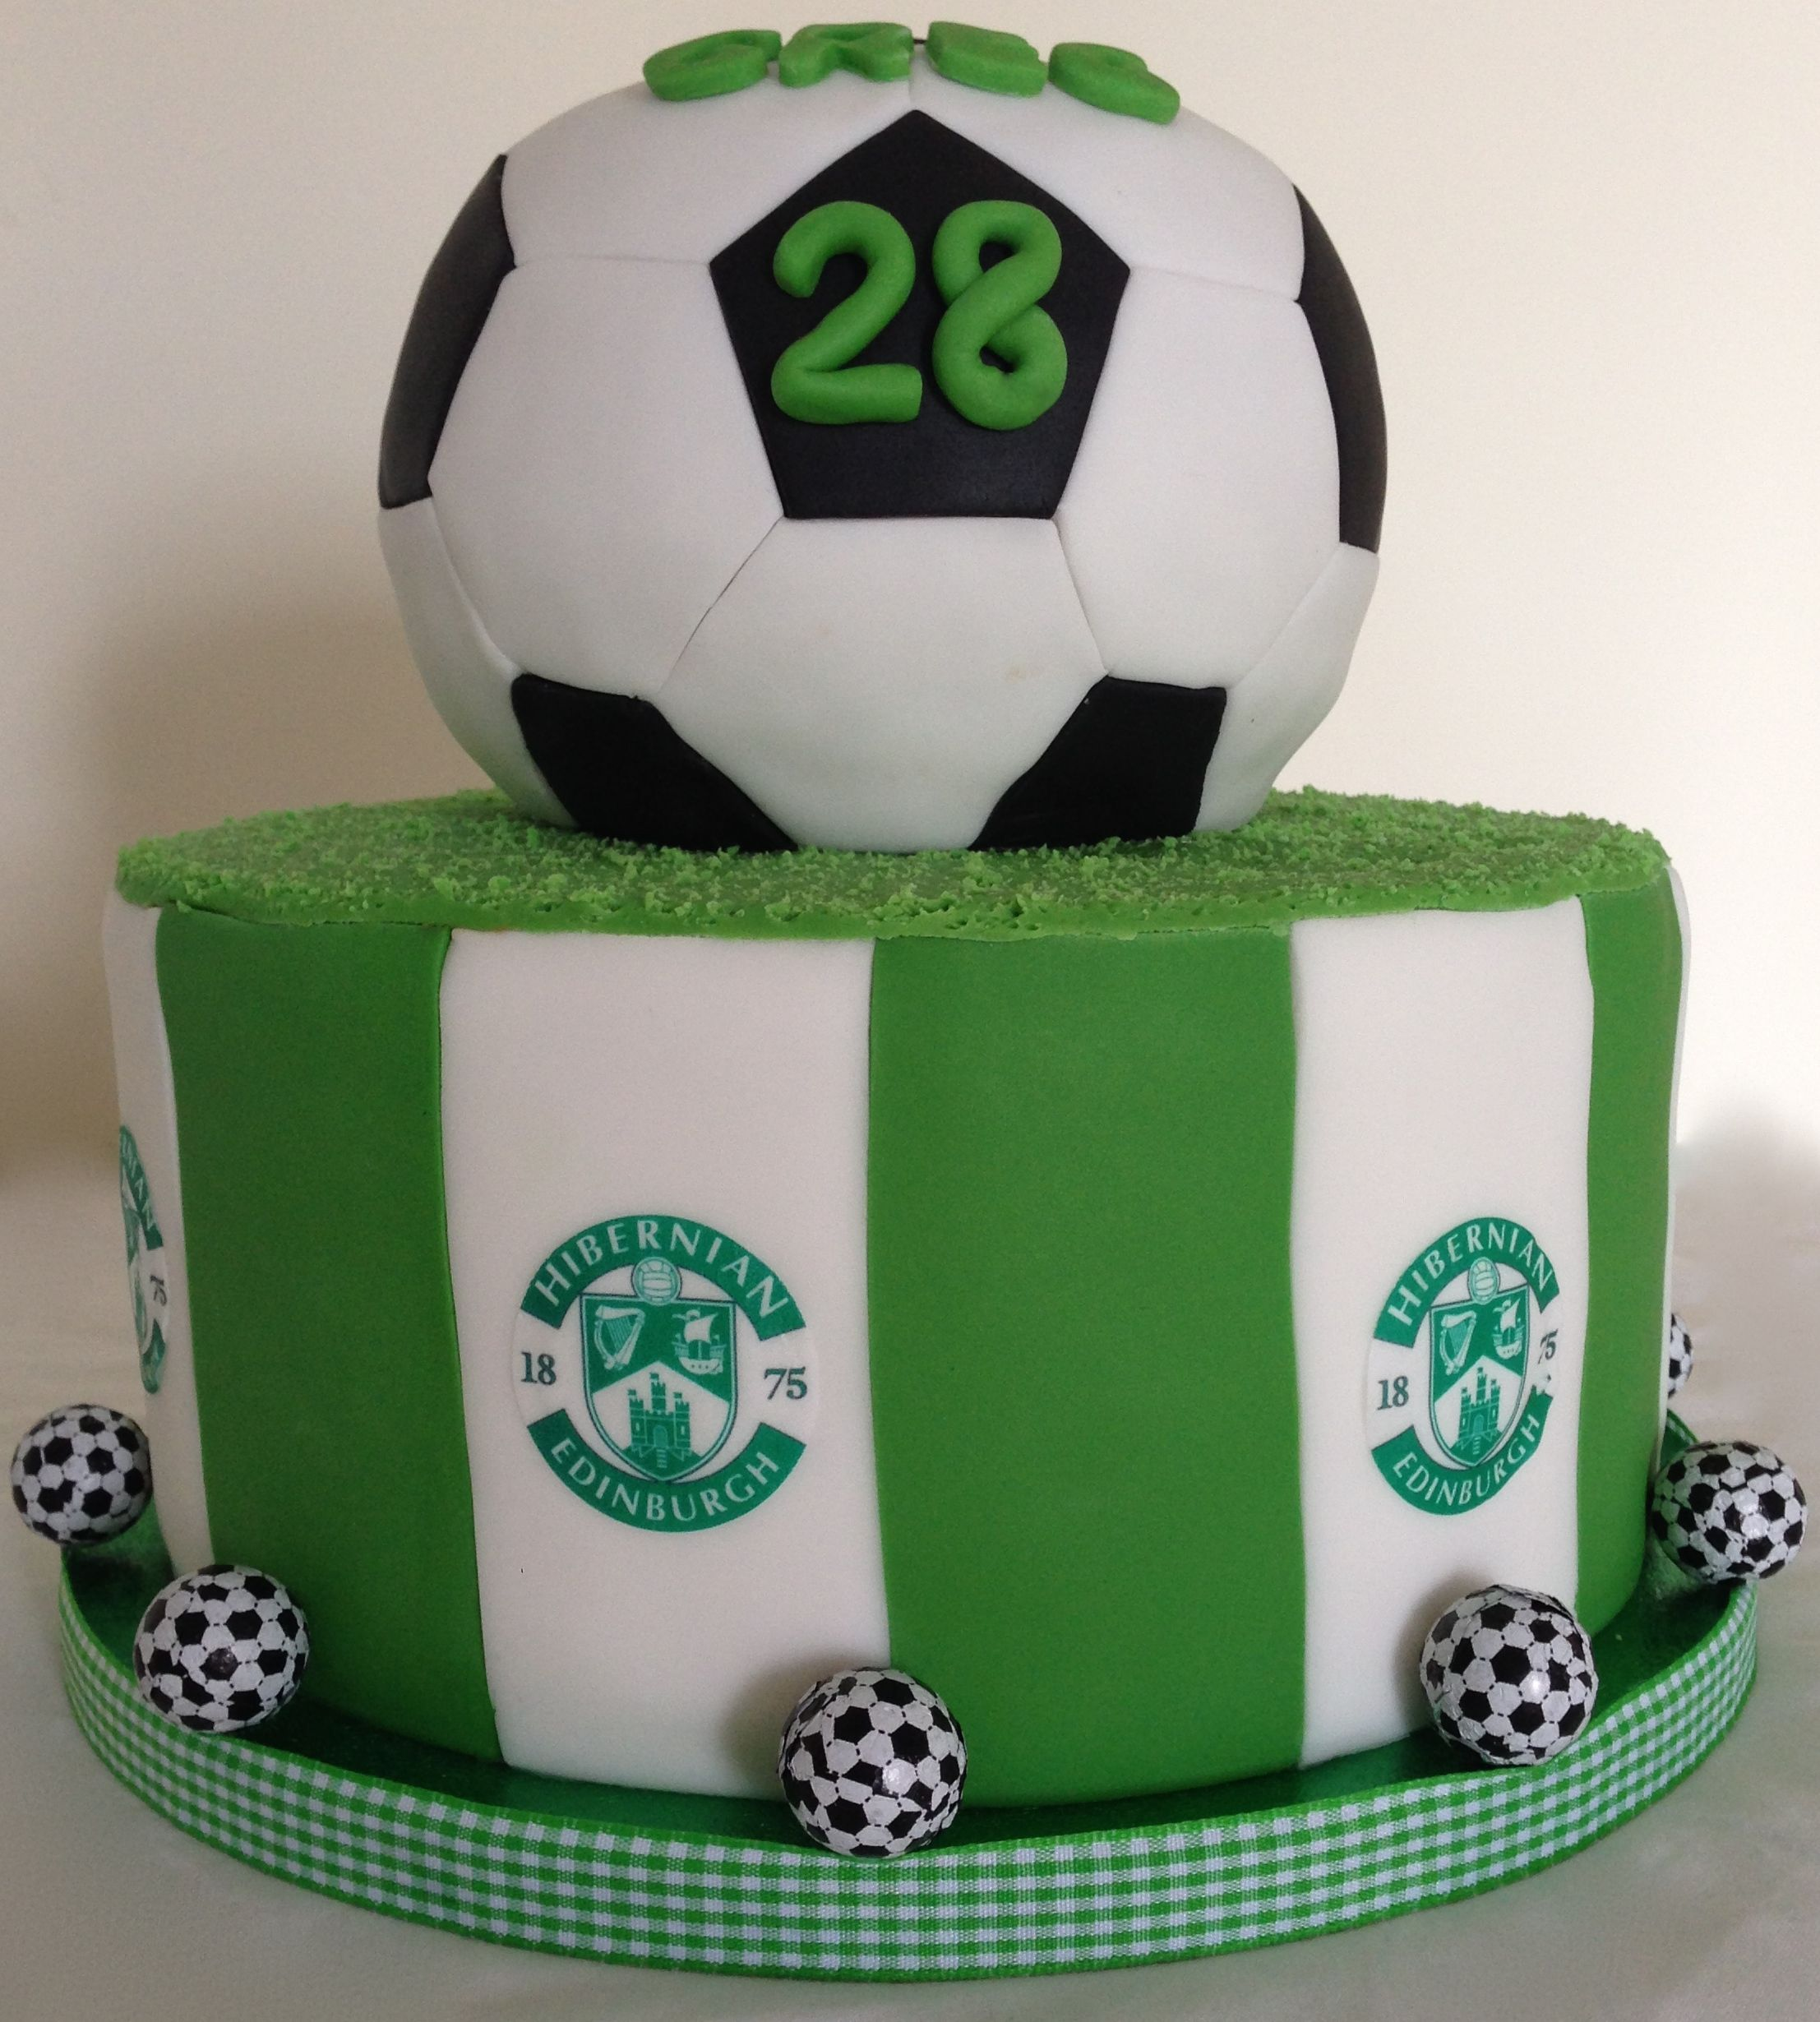 Hibernian FC Cake With Hidden Chocolate Footballs Inside